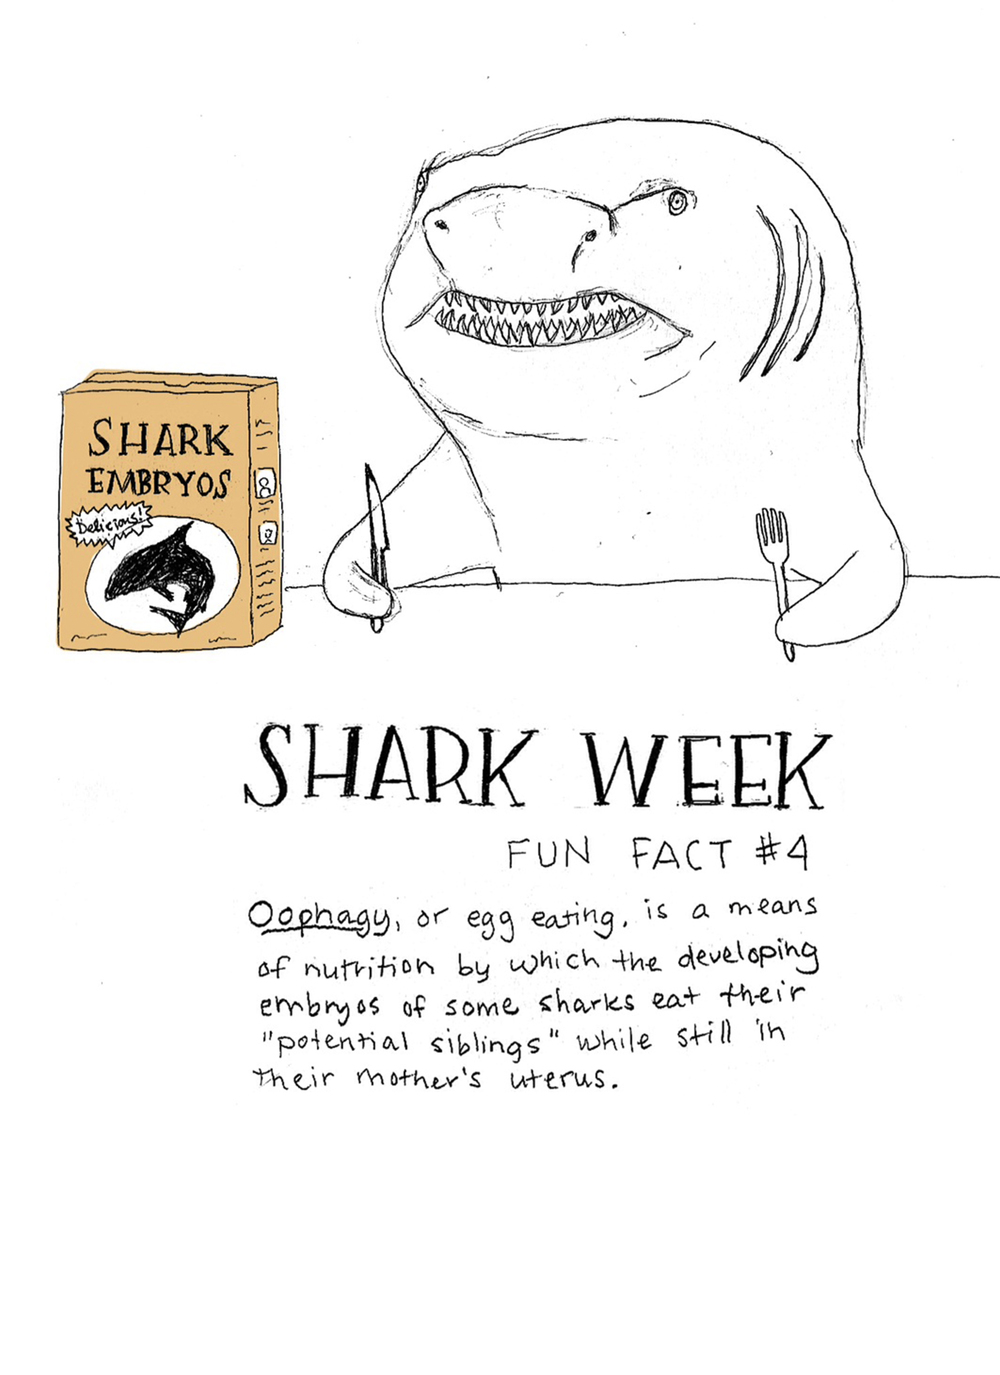 SharkWeek_Fact4_edited.jpg